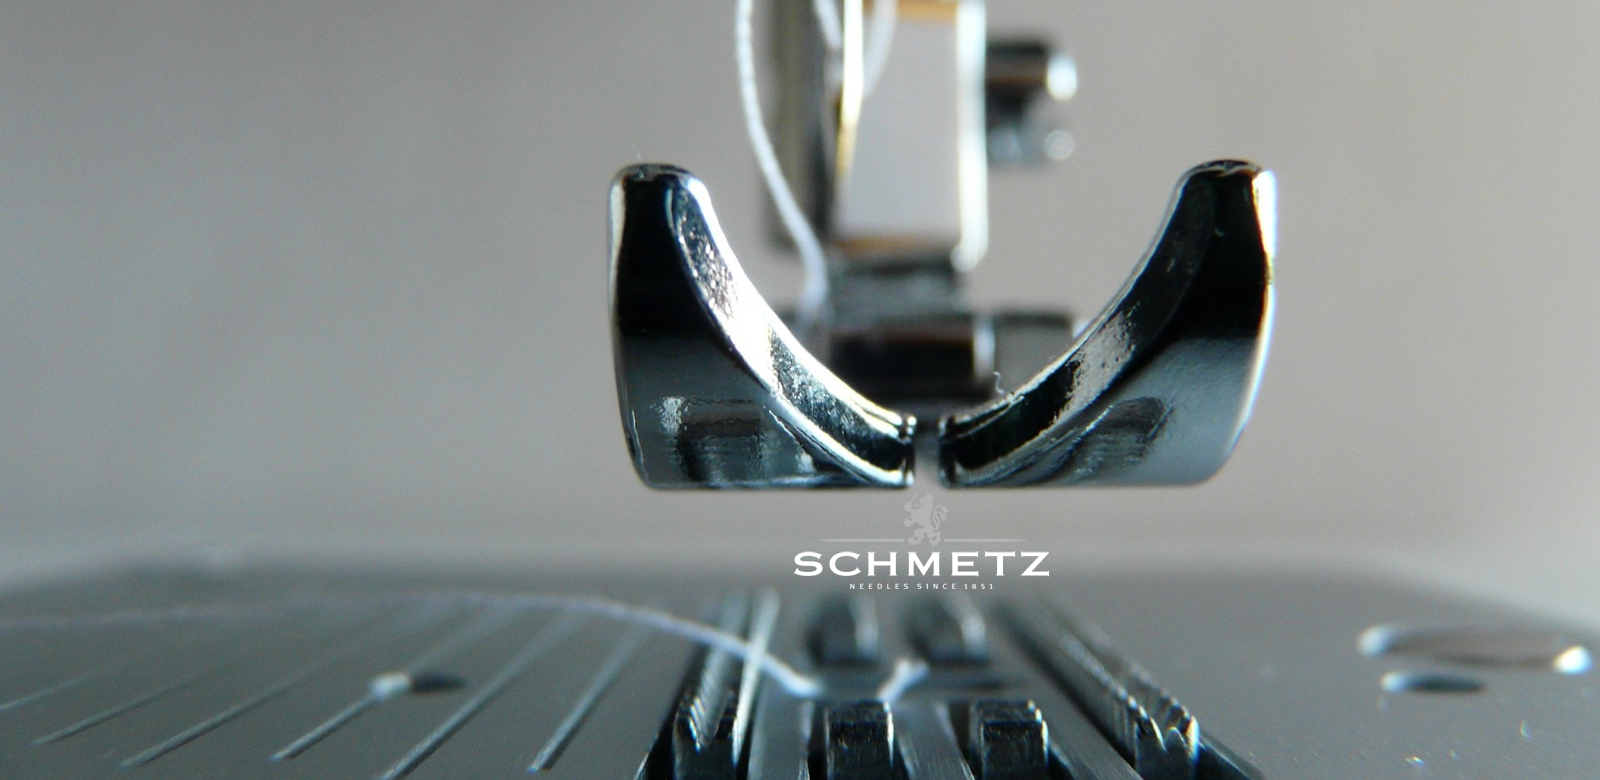 schmetz authorized dealer in sri lanka sara enterprises